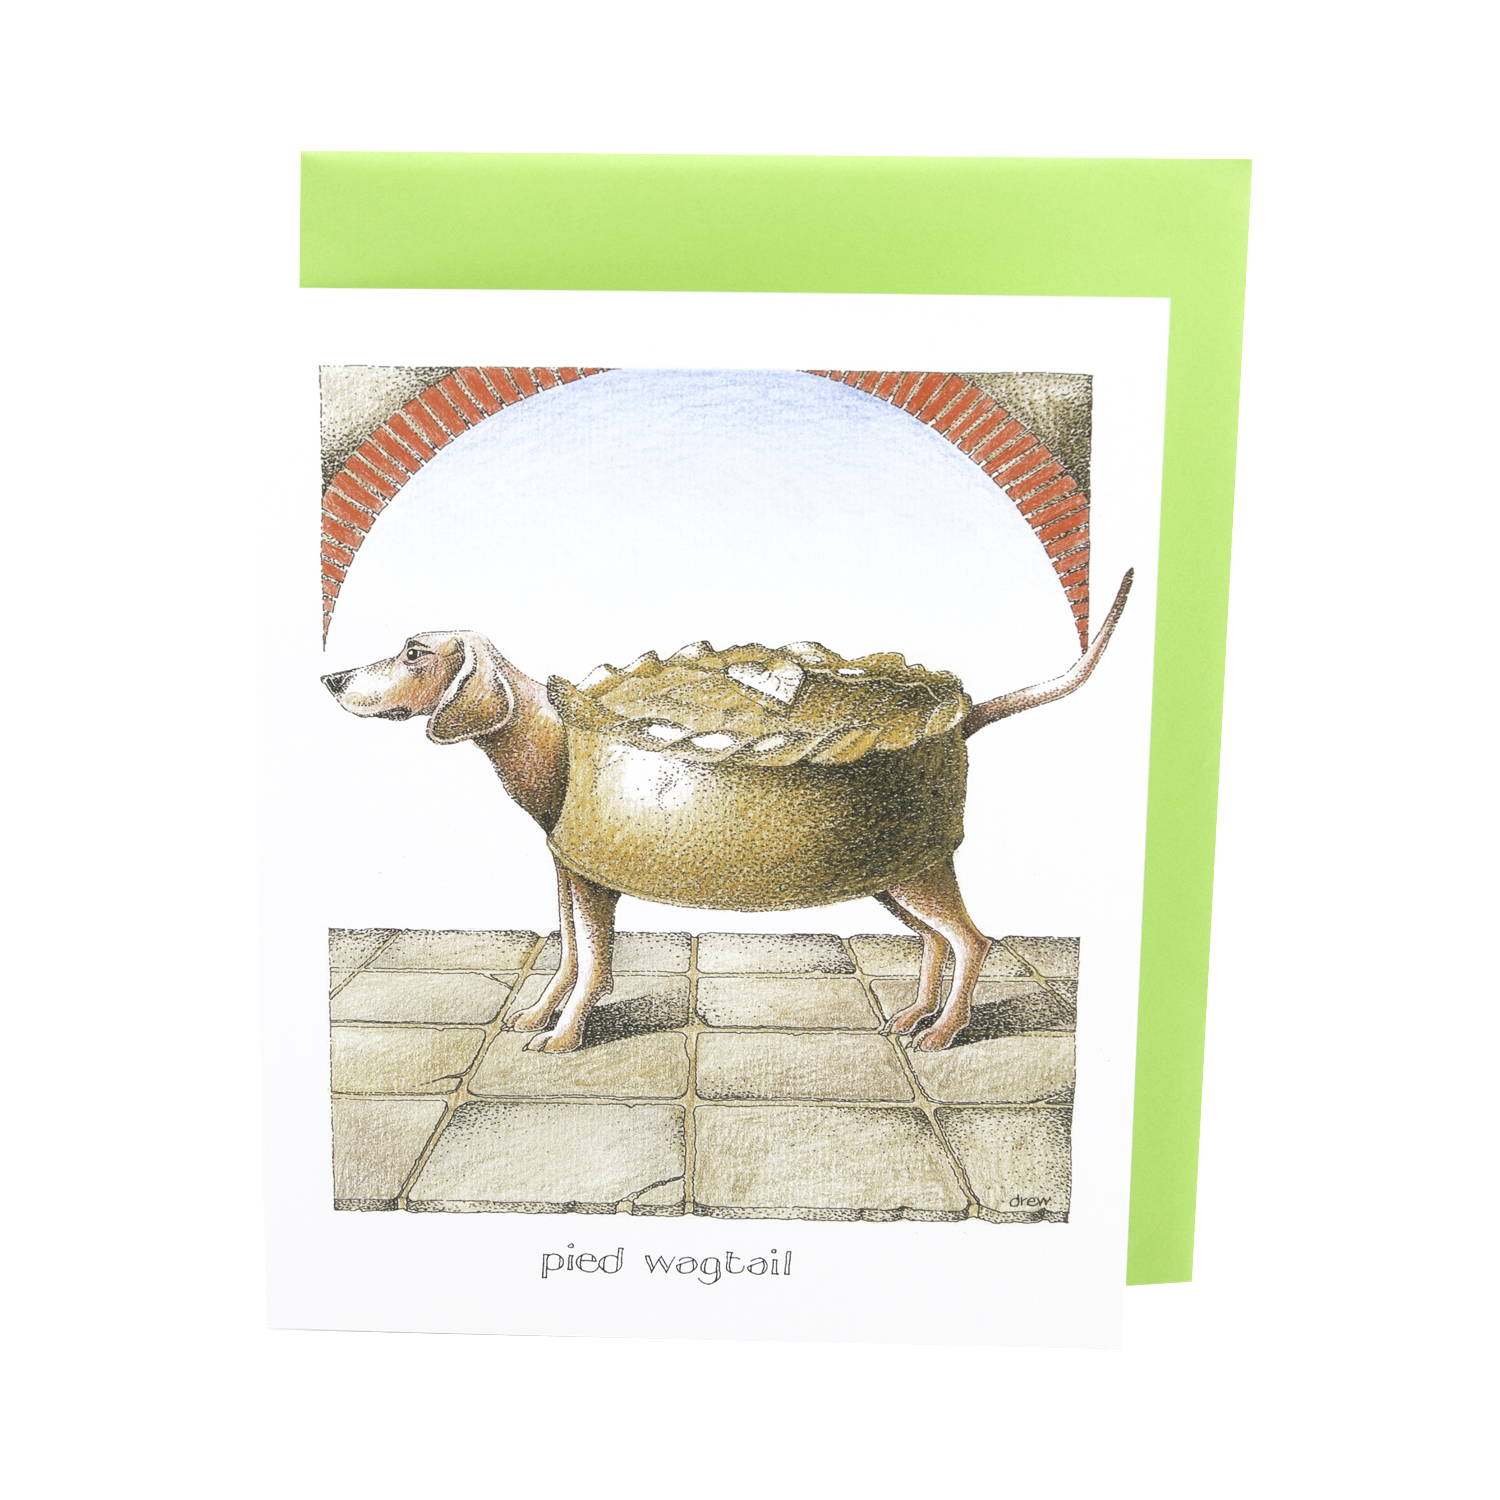 DogKrazy.Gifts – Simon Drew Pied Wagtail Humorous card featuring a dog so full of treats it's turned into a pie. Part of the Simon Drew Dog Collection available from Dog Krazy Gifts